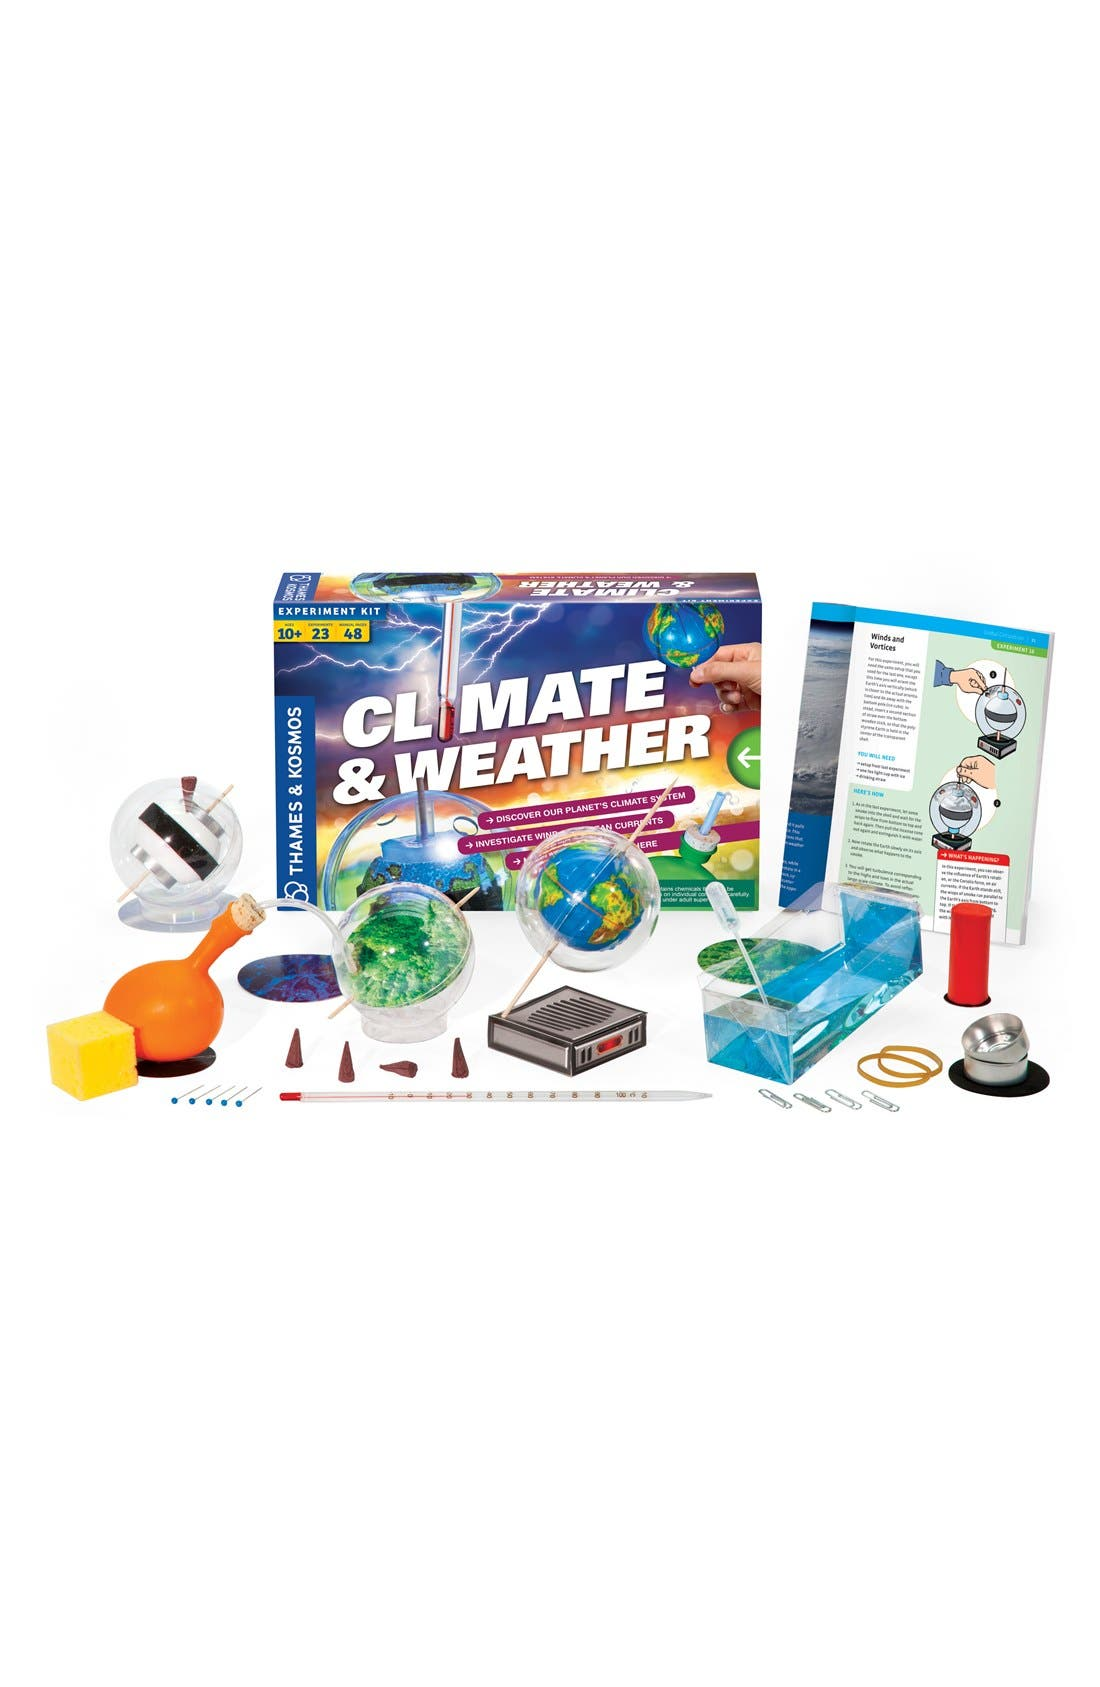 Alternate Image 1 Selected - Thames & Kosmos 'Climate & Weather' Experiment Kit